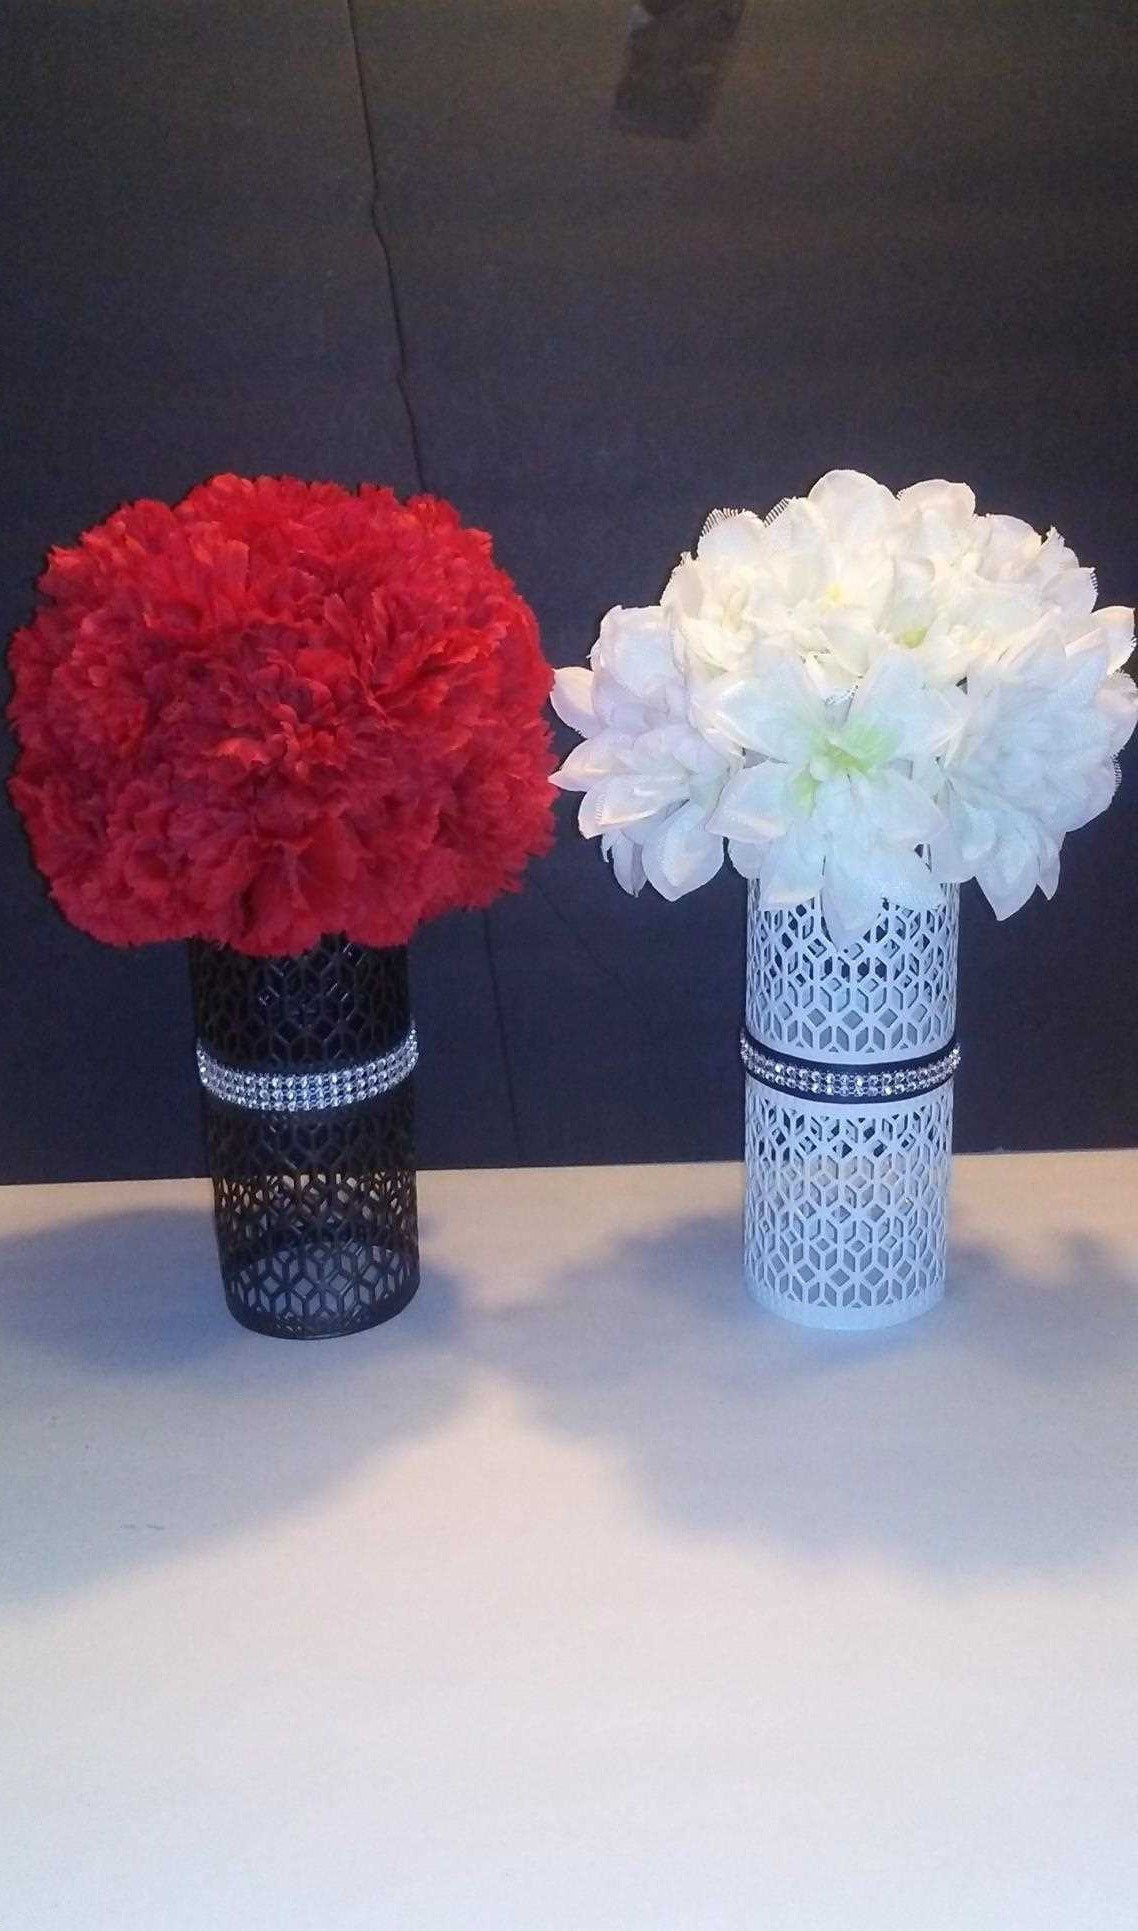 cheap white vases bulk of edding vases beautiful dollar tree kuxniya throughout decorations for weddings beautiful dollar tree wedding decorations awesome h vases dollar vase i 0d